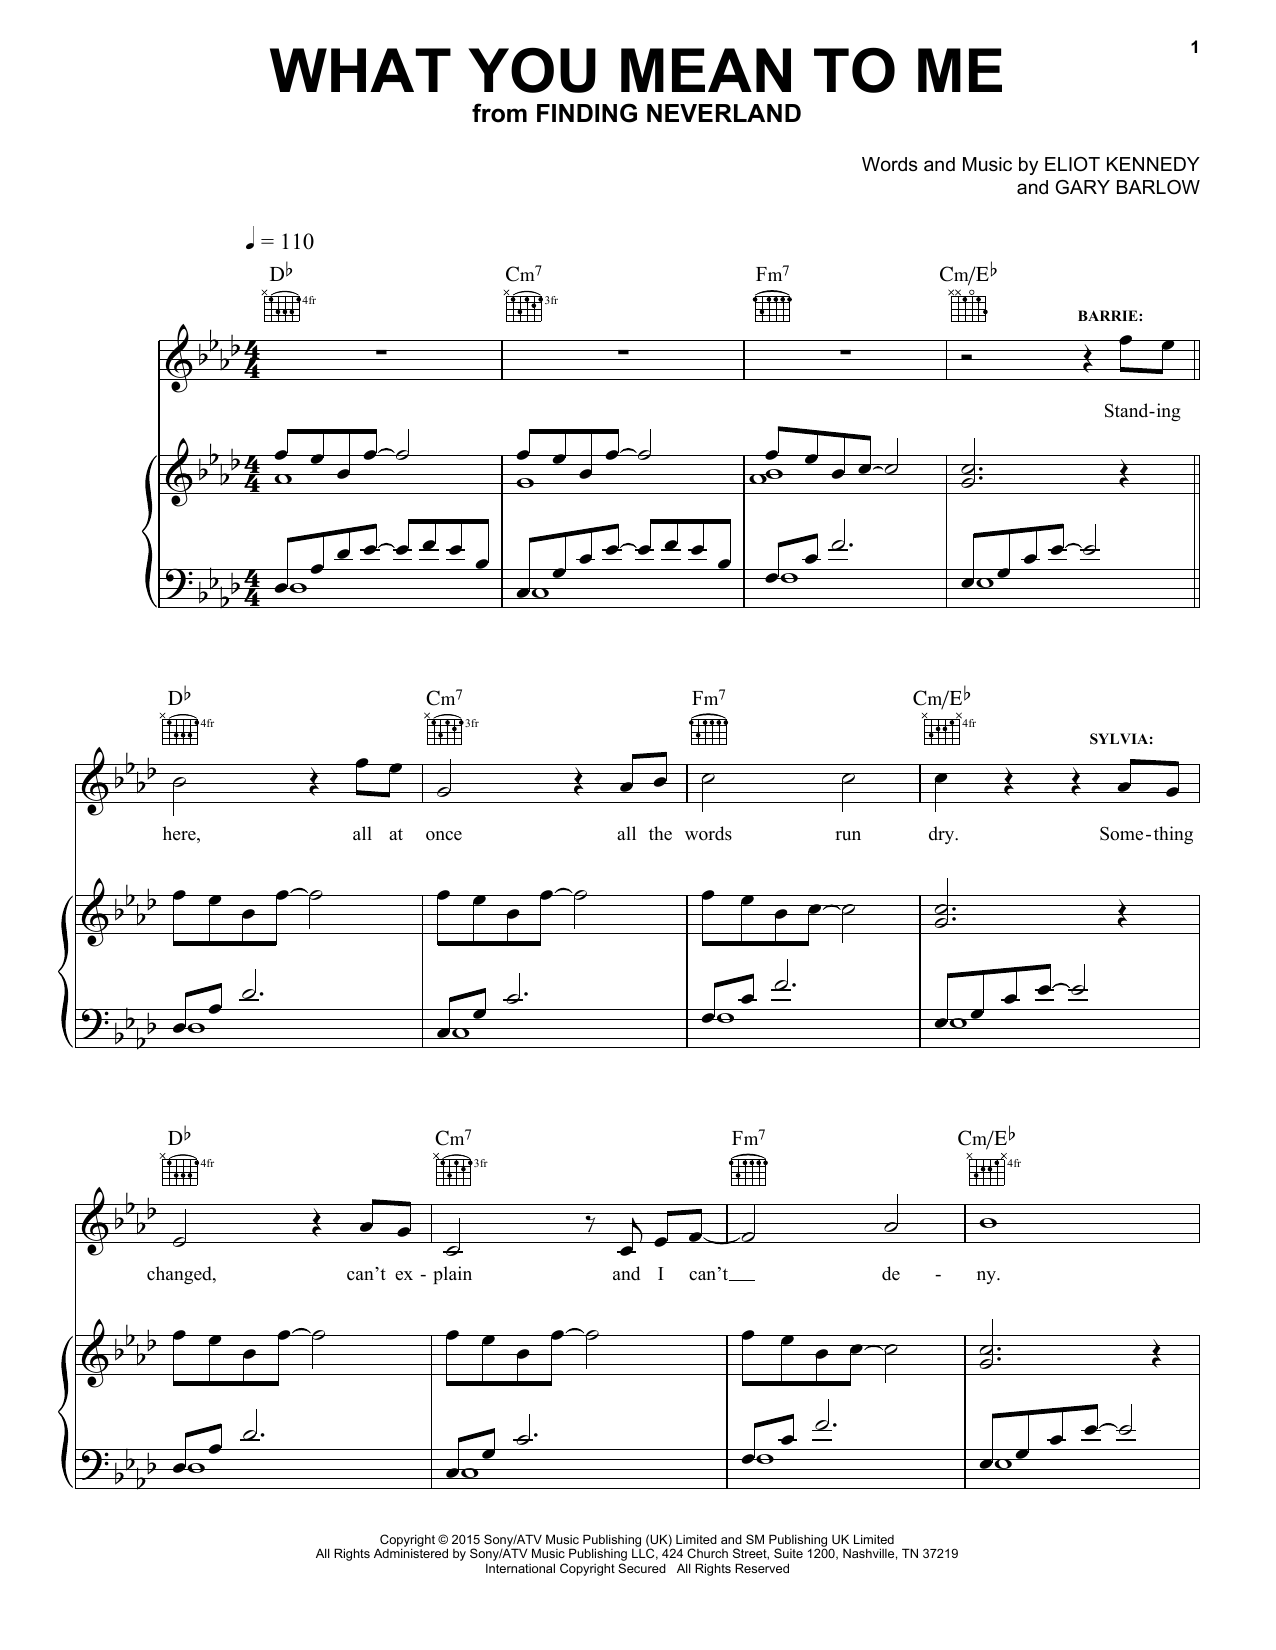 Gary Barlow & Eliot Kennedy What You Mean To Me sheet music notes and chords. Download Printable PDF.